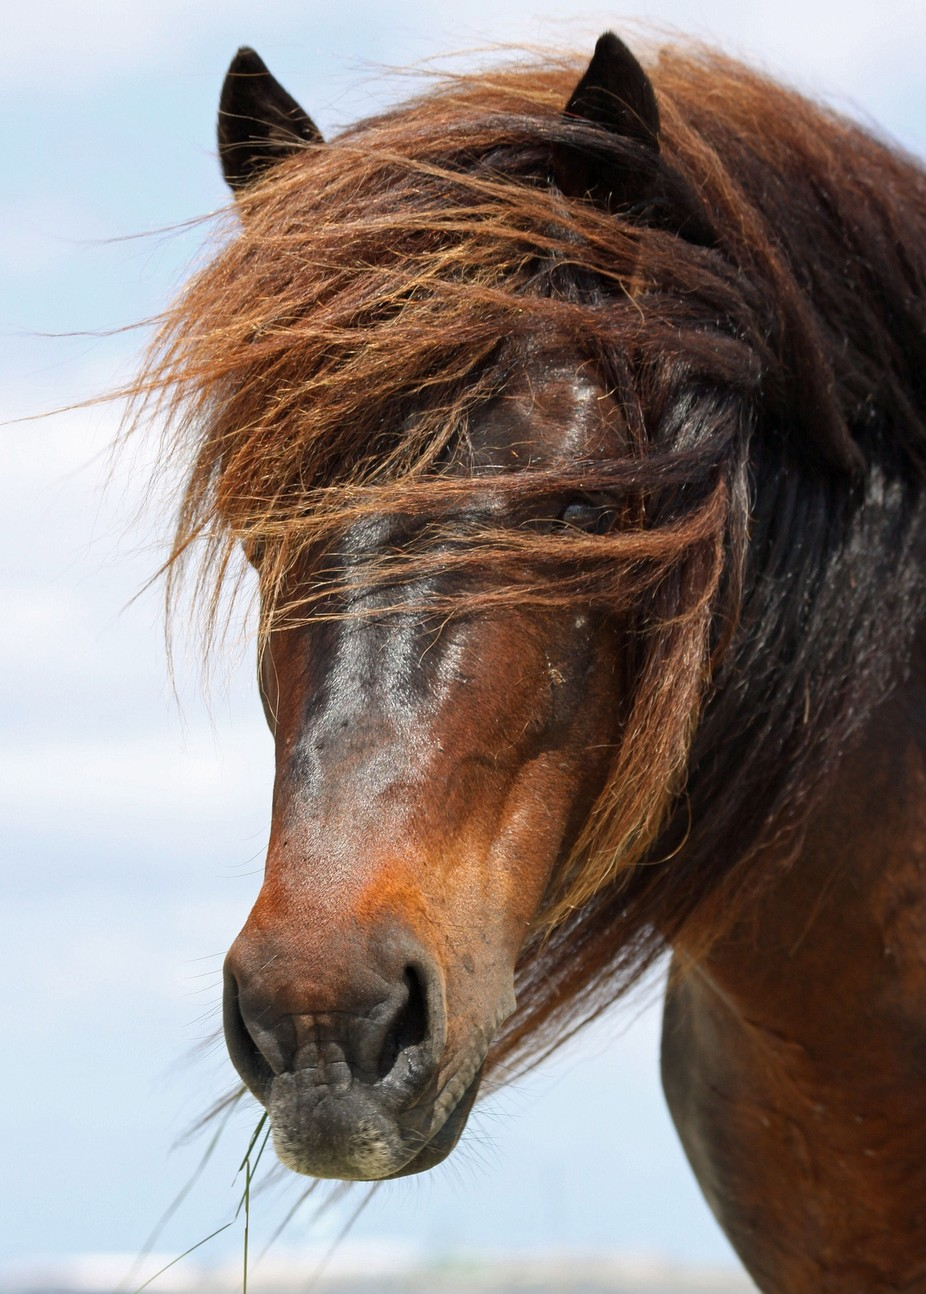 Captured this wild horse.  Time stood still.  He just stood there and posed.